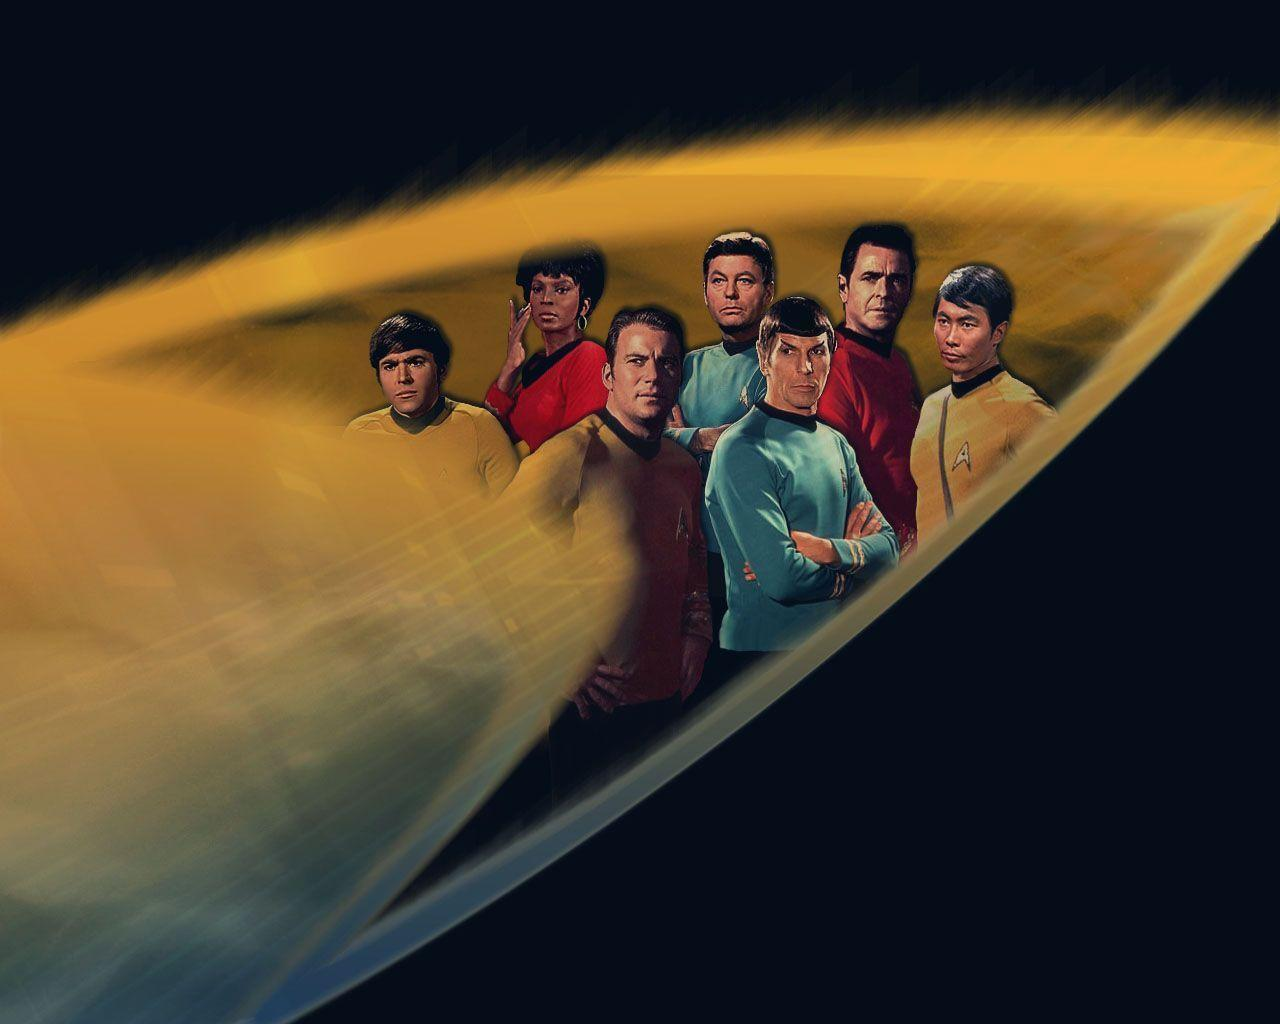 Star Trek TOS Crew by TheAngryAngel on DeviantArt